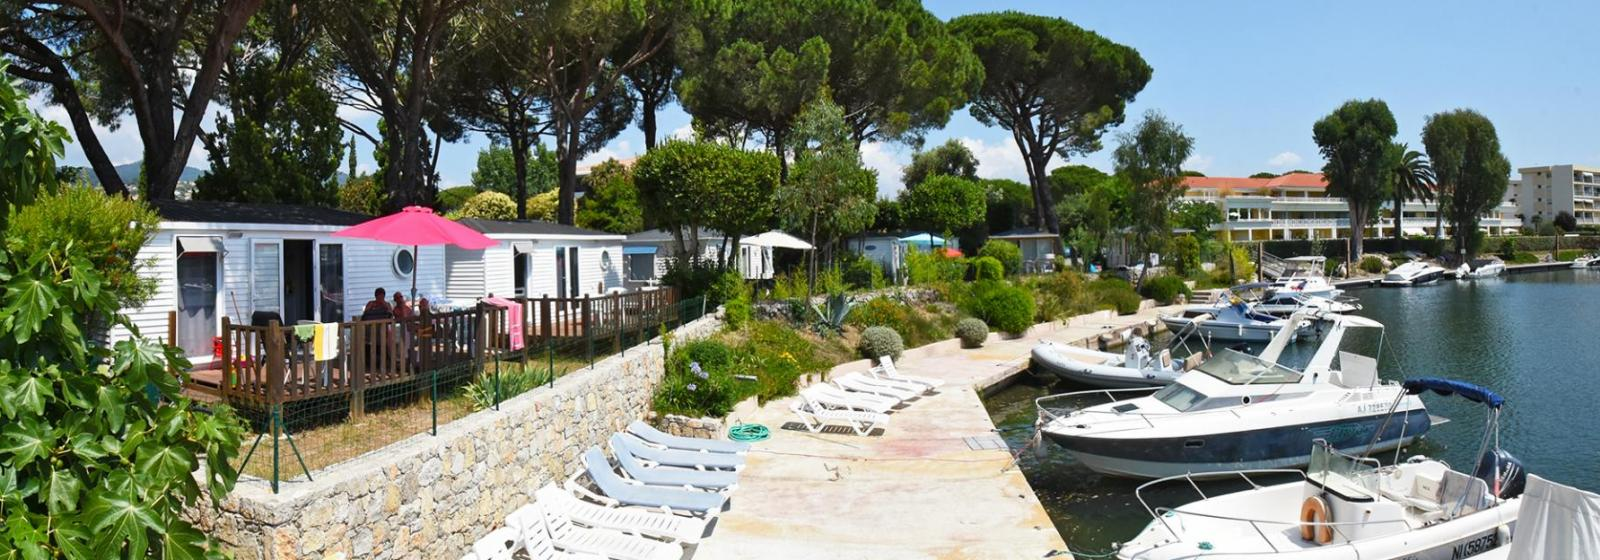 location mobil home cannes